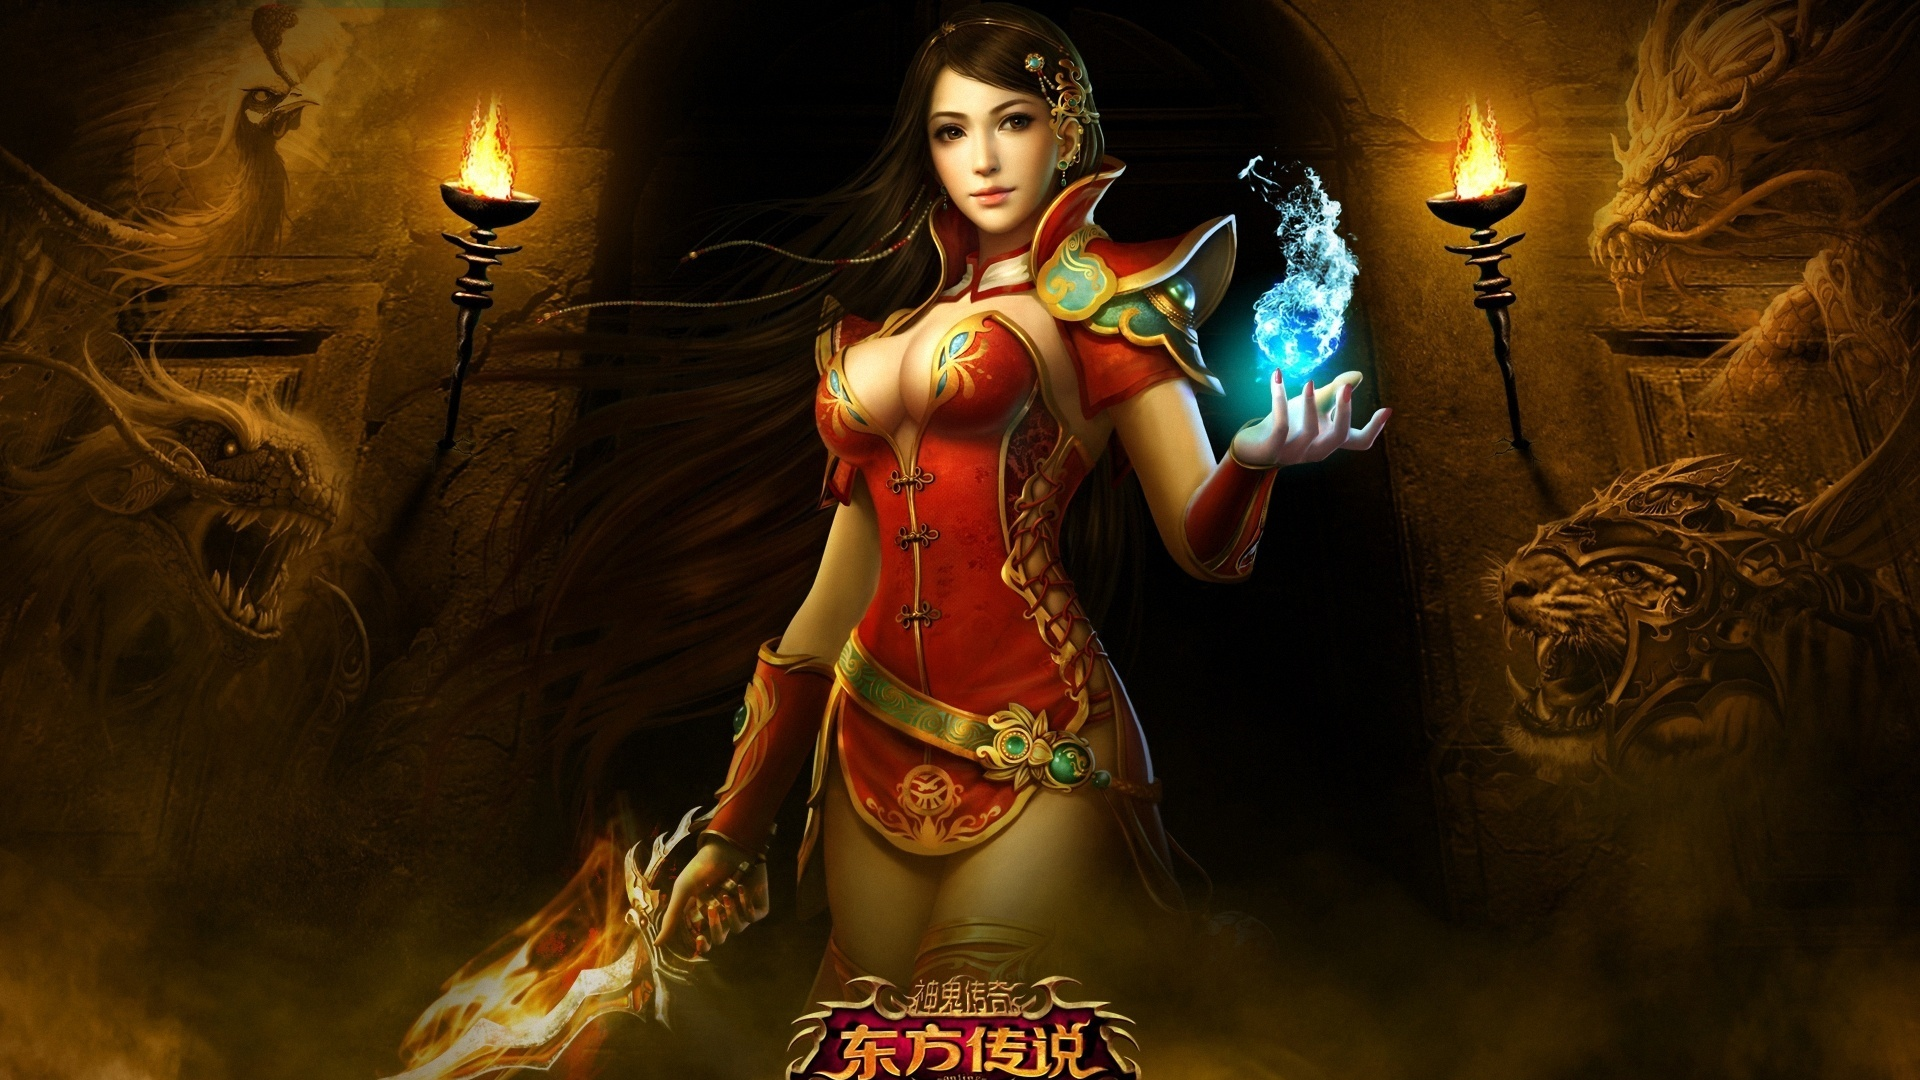 Video Game Girls Wallpapers Hd